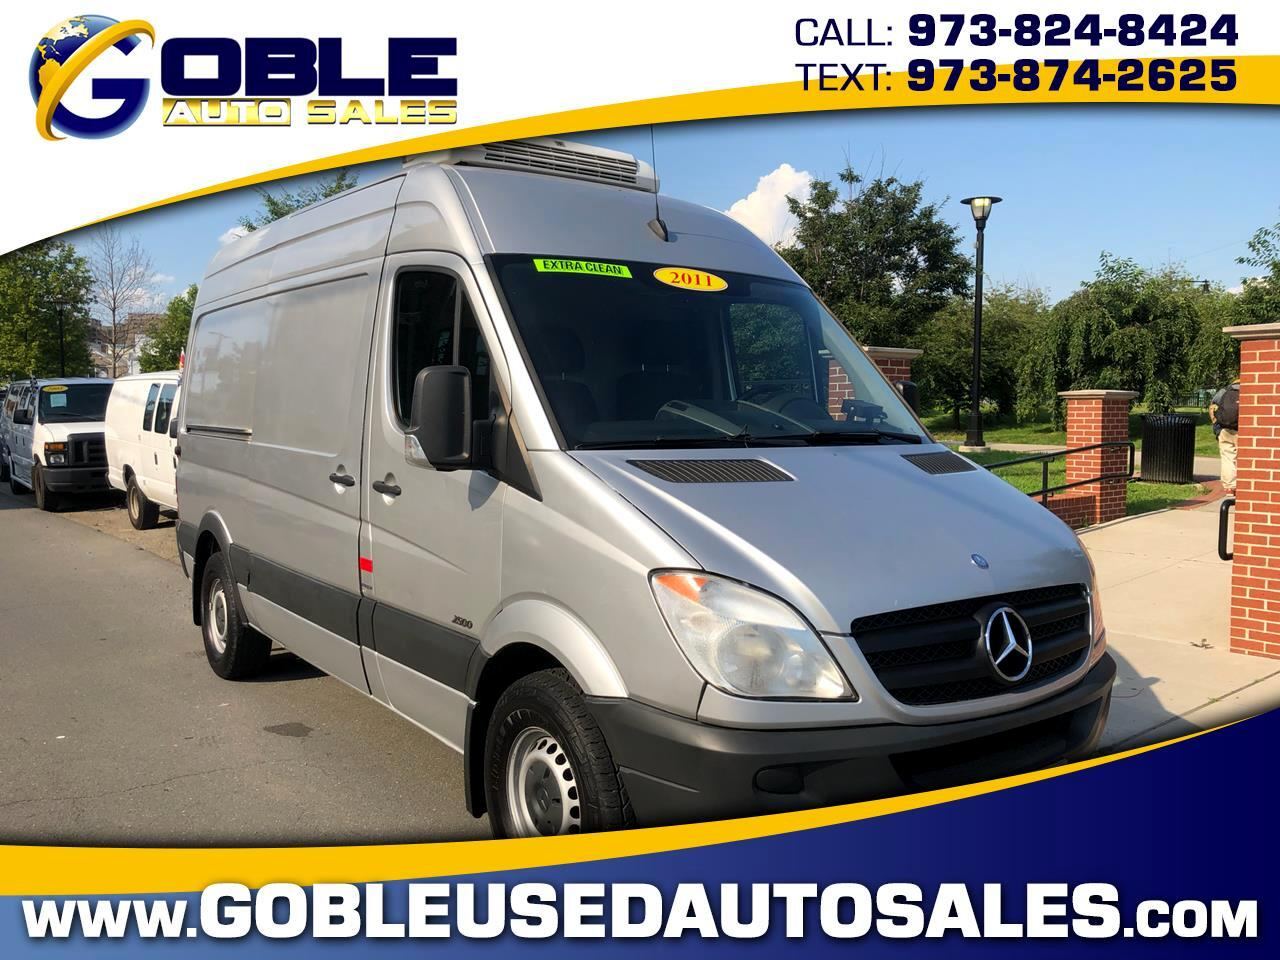 2011 Mercedes-Benz Sprinter Cargo Vans 2500 144